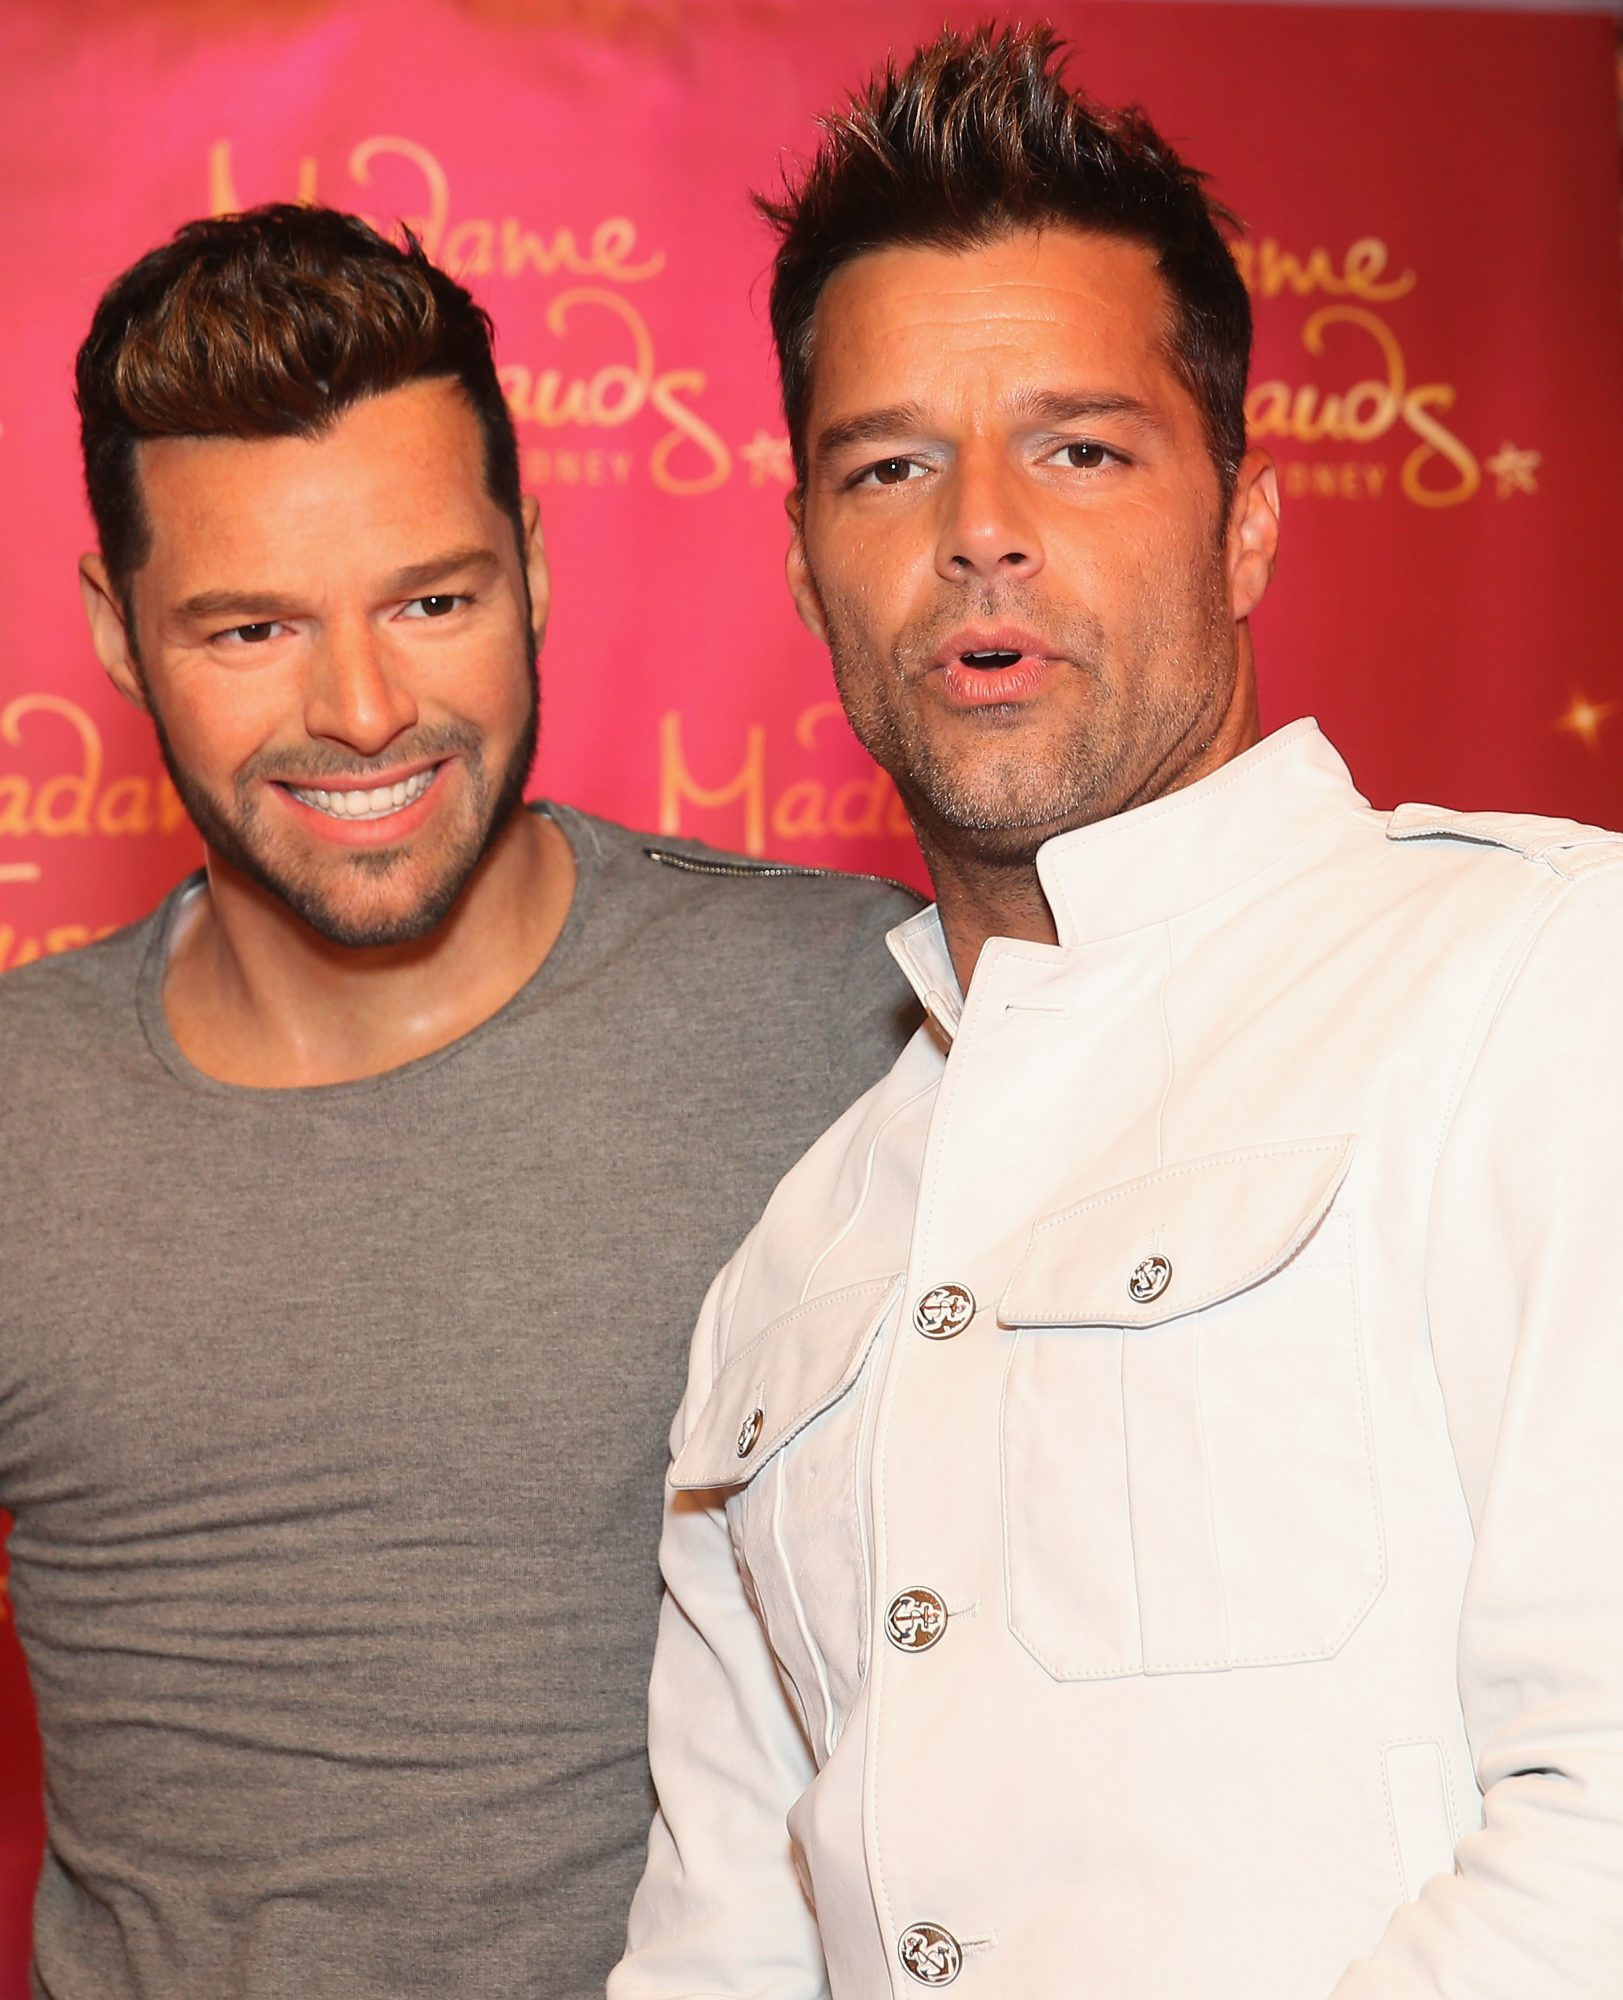 Ricky Martin Meets His Wax Figure